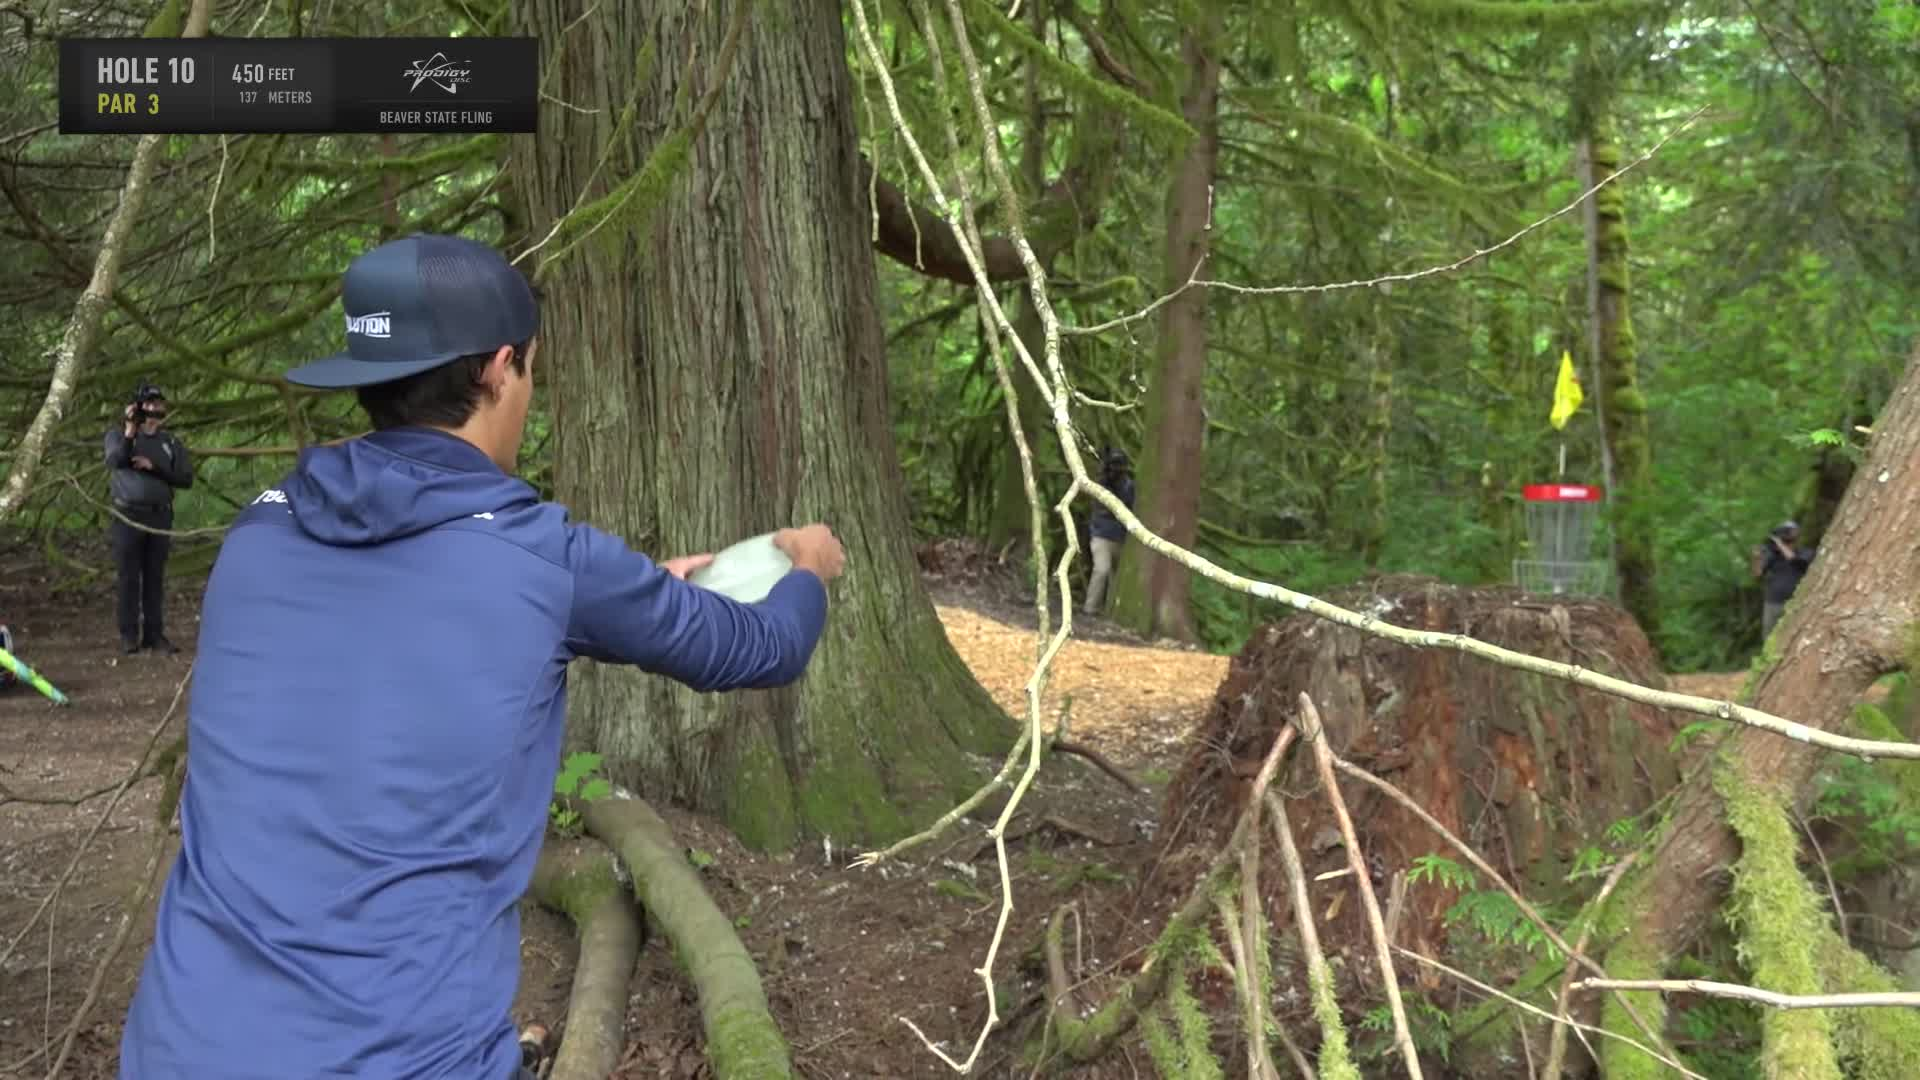 ace, bsf, dela, delaveaga, dgpt, dgwt, disc, disc golf, frolf, hole in one, masters cup, mcbeast, milo, nate sexton, nt, paul mcbeth, pdga, simon lizotte, tournament, worlds, 2019 Beaver State Fling - Round 1 Part 2 - Eagle McMahon hole 10 putt GIFs